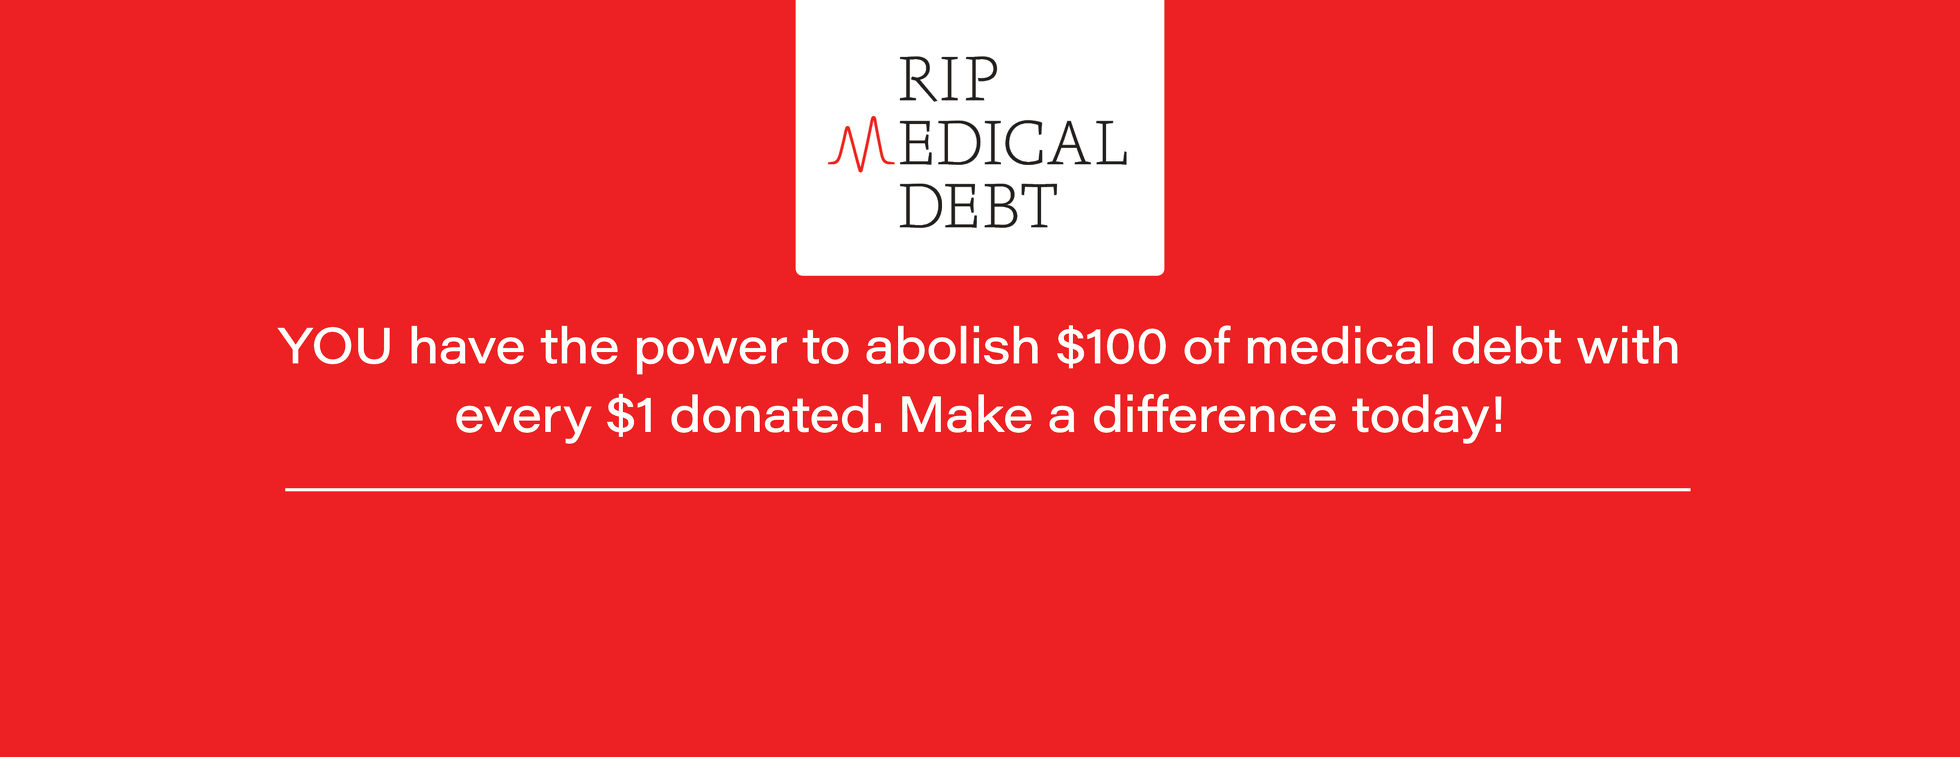 @Prisonculture's Campaign to Abolish $10M of Medical Debt in Chicago, New York, and Flint